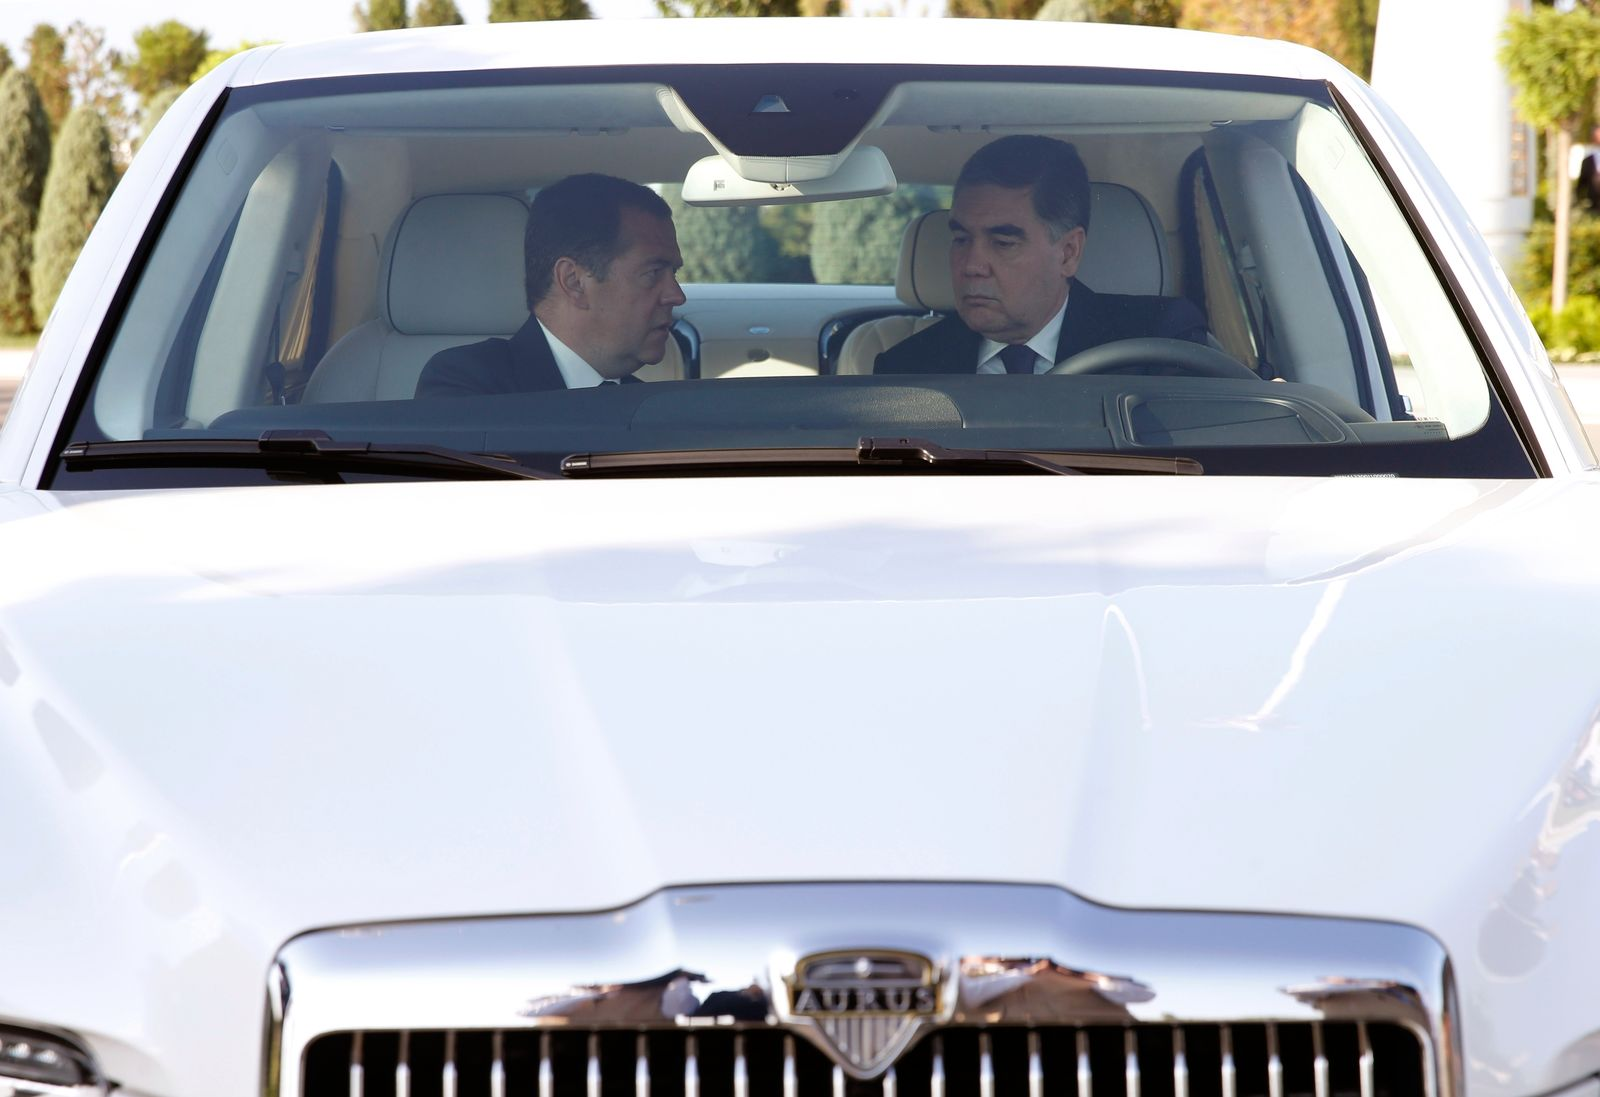 Russian Prime Minister Dmitry Medvedev, left, and Turkmenistan's President Gurbanguly Berdymukhamedov sit inside the Russian made limousine Aurus Senat prior to a session of the First Caspian Economic Forum in Turkmenbashi, Turkmenistan, Monday, Aug. 12, 2019. (Dmitry Astakhov, Sputnik, Government Pool Photo via AP)